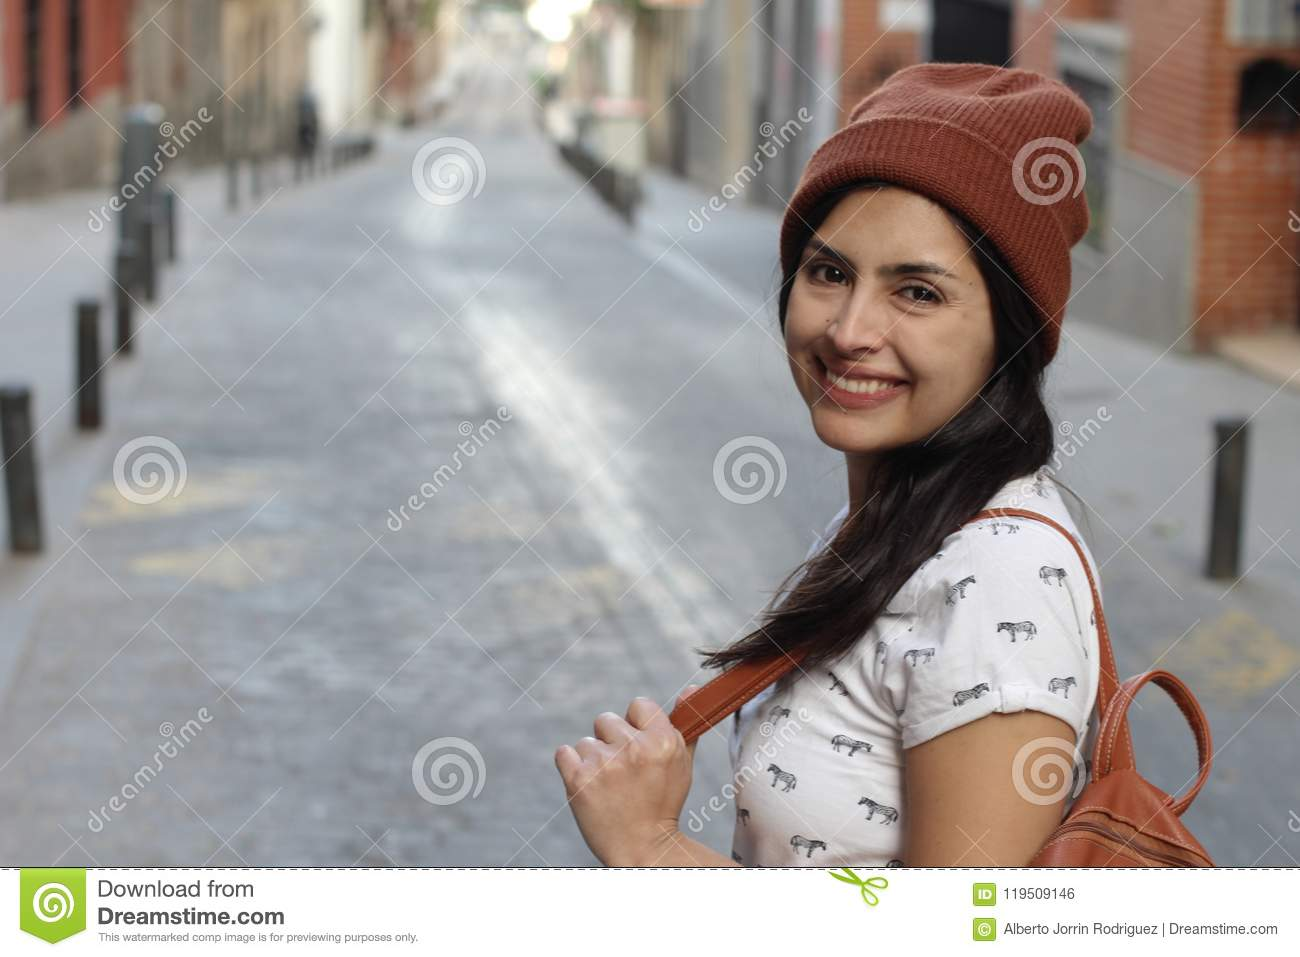 Determined ethnic woman smiling on the street